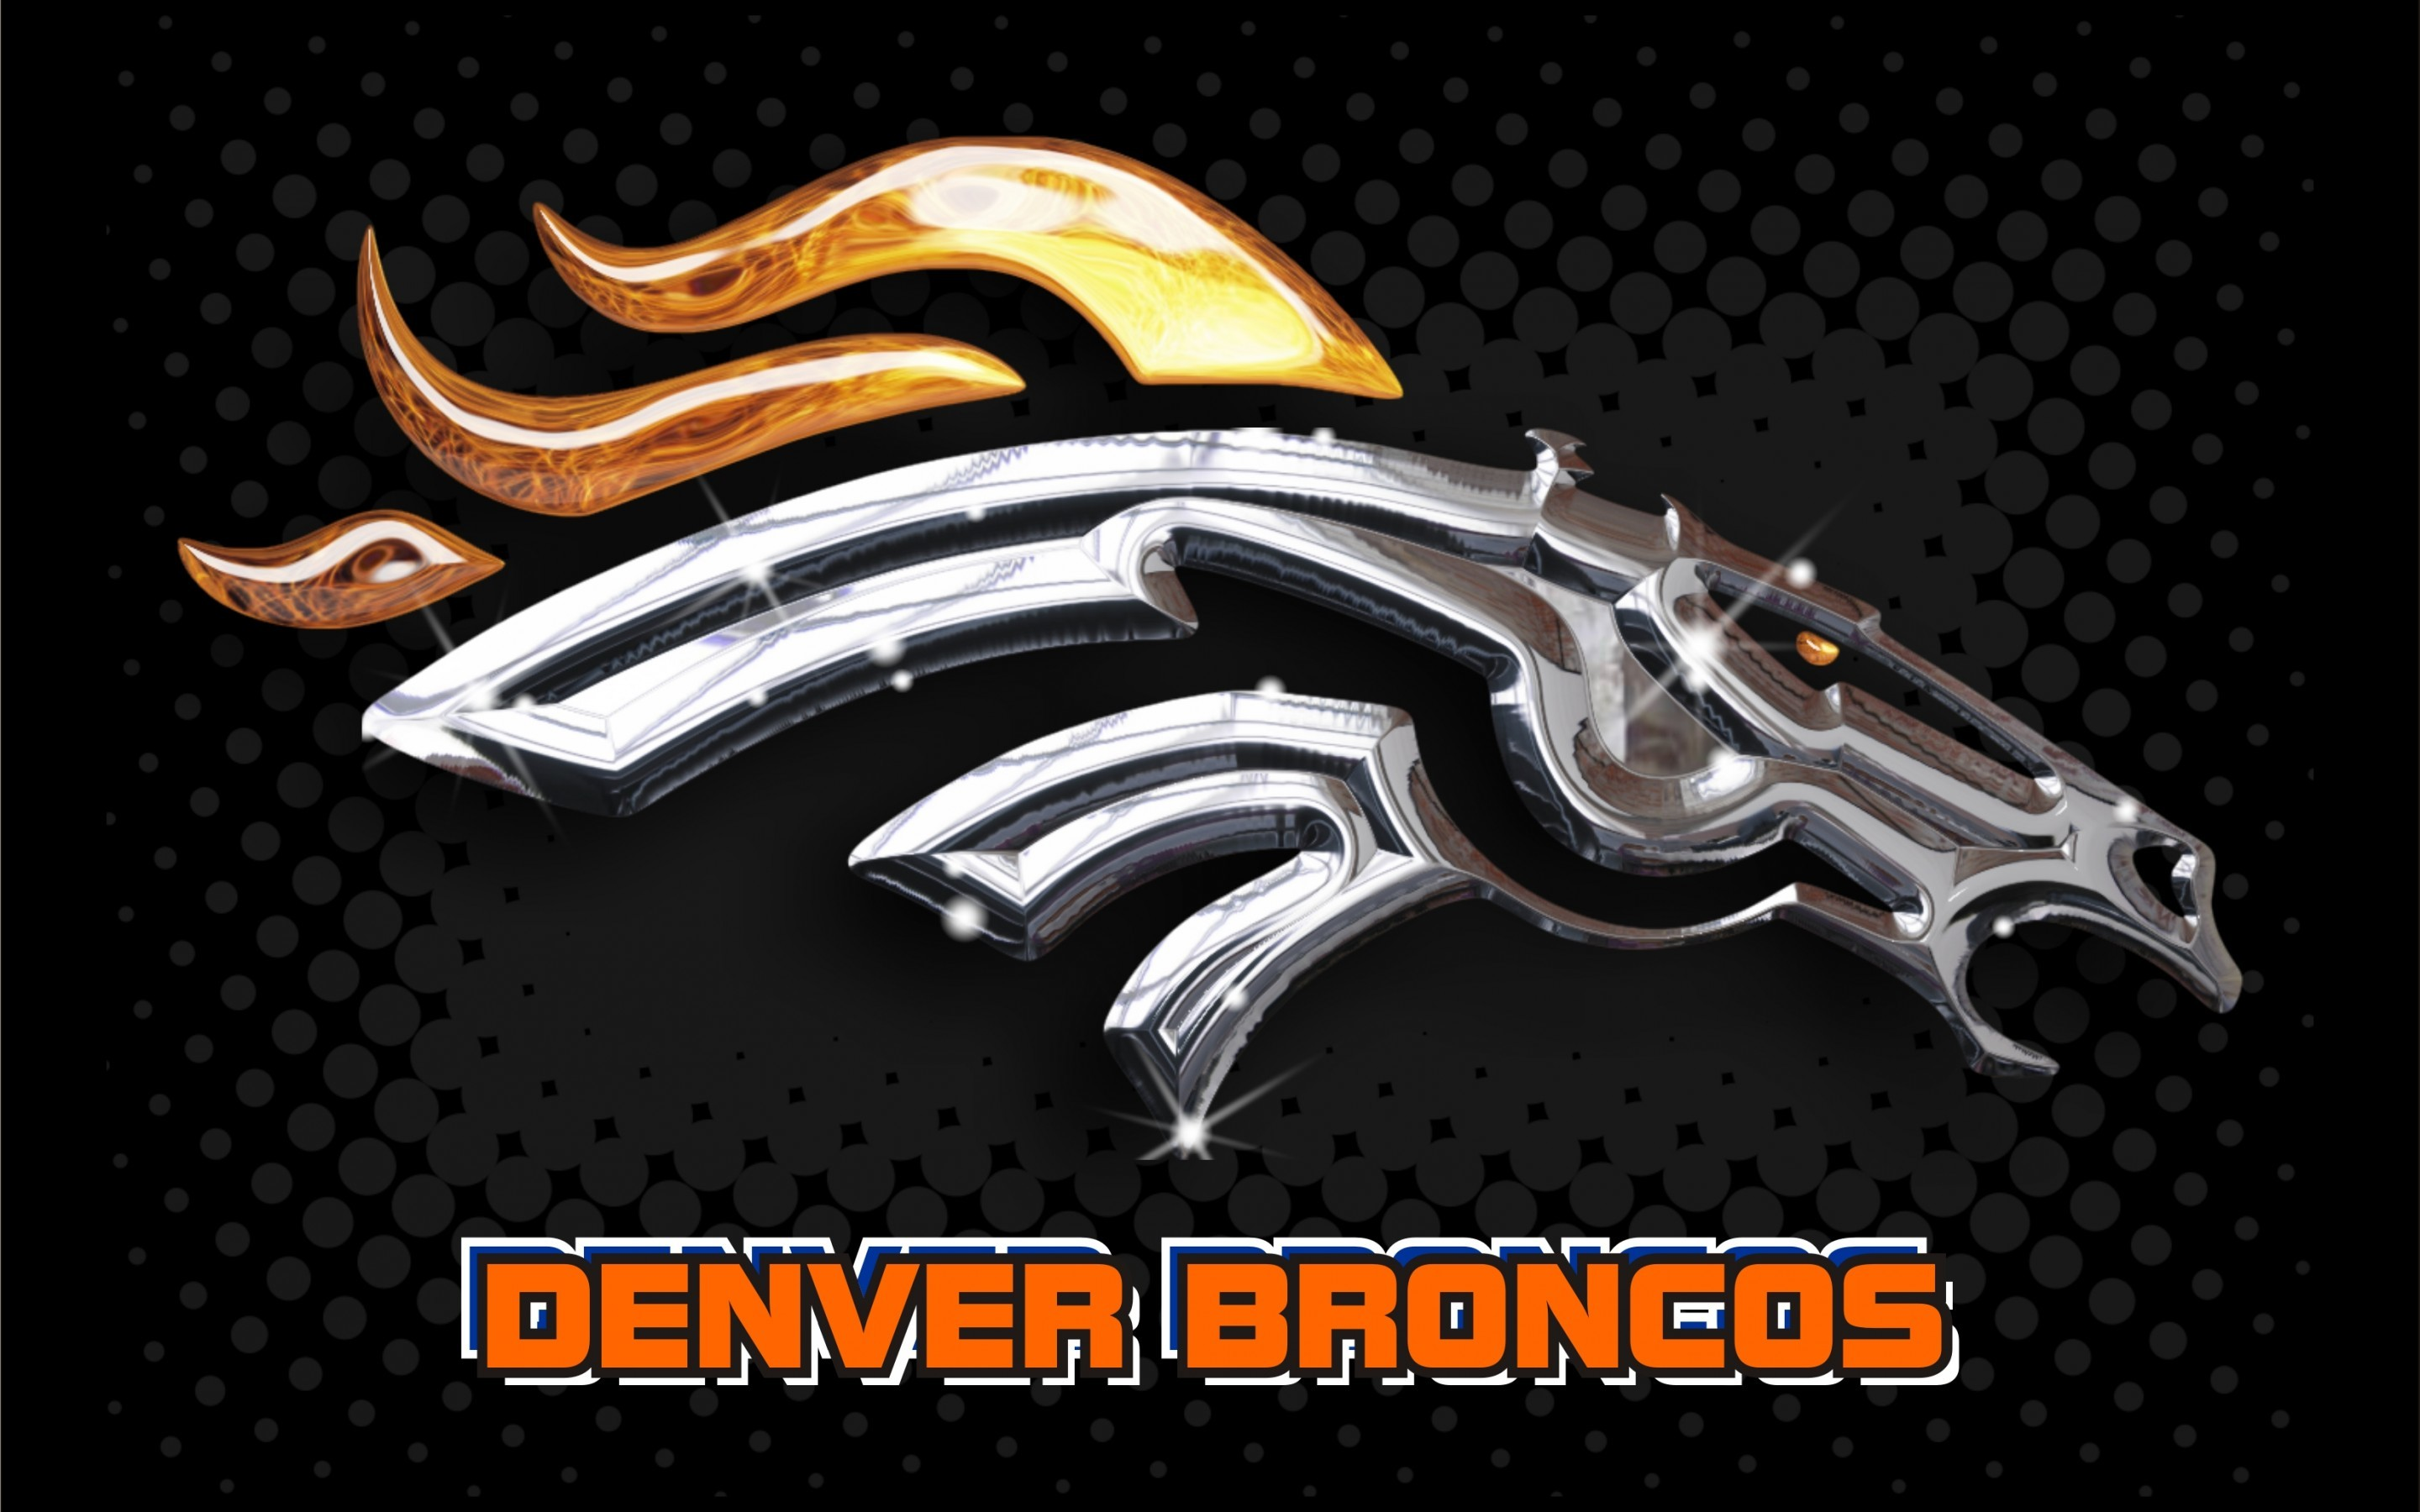 Kansas city chiefs wallpapers 54 images - Denver broncos background ...